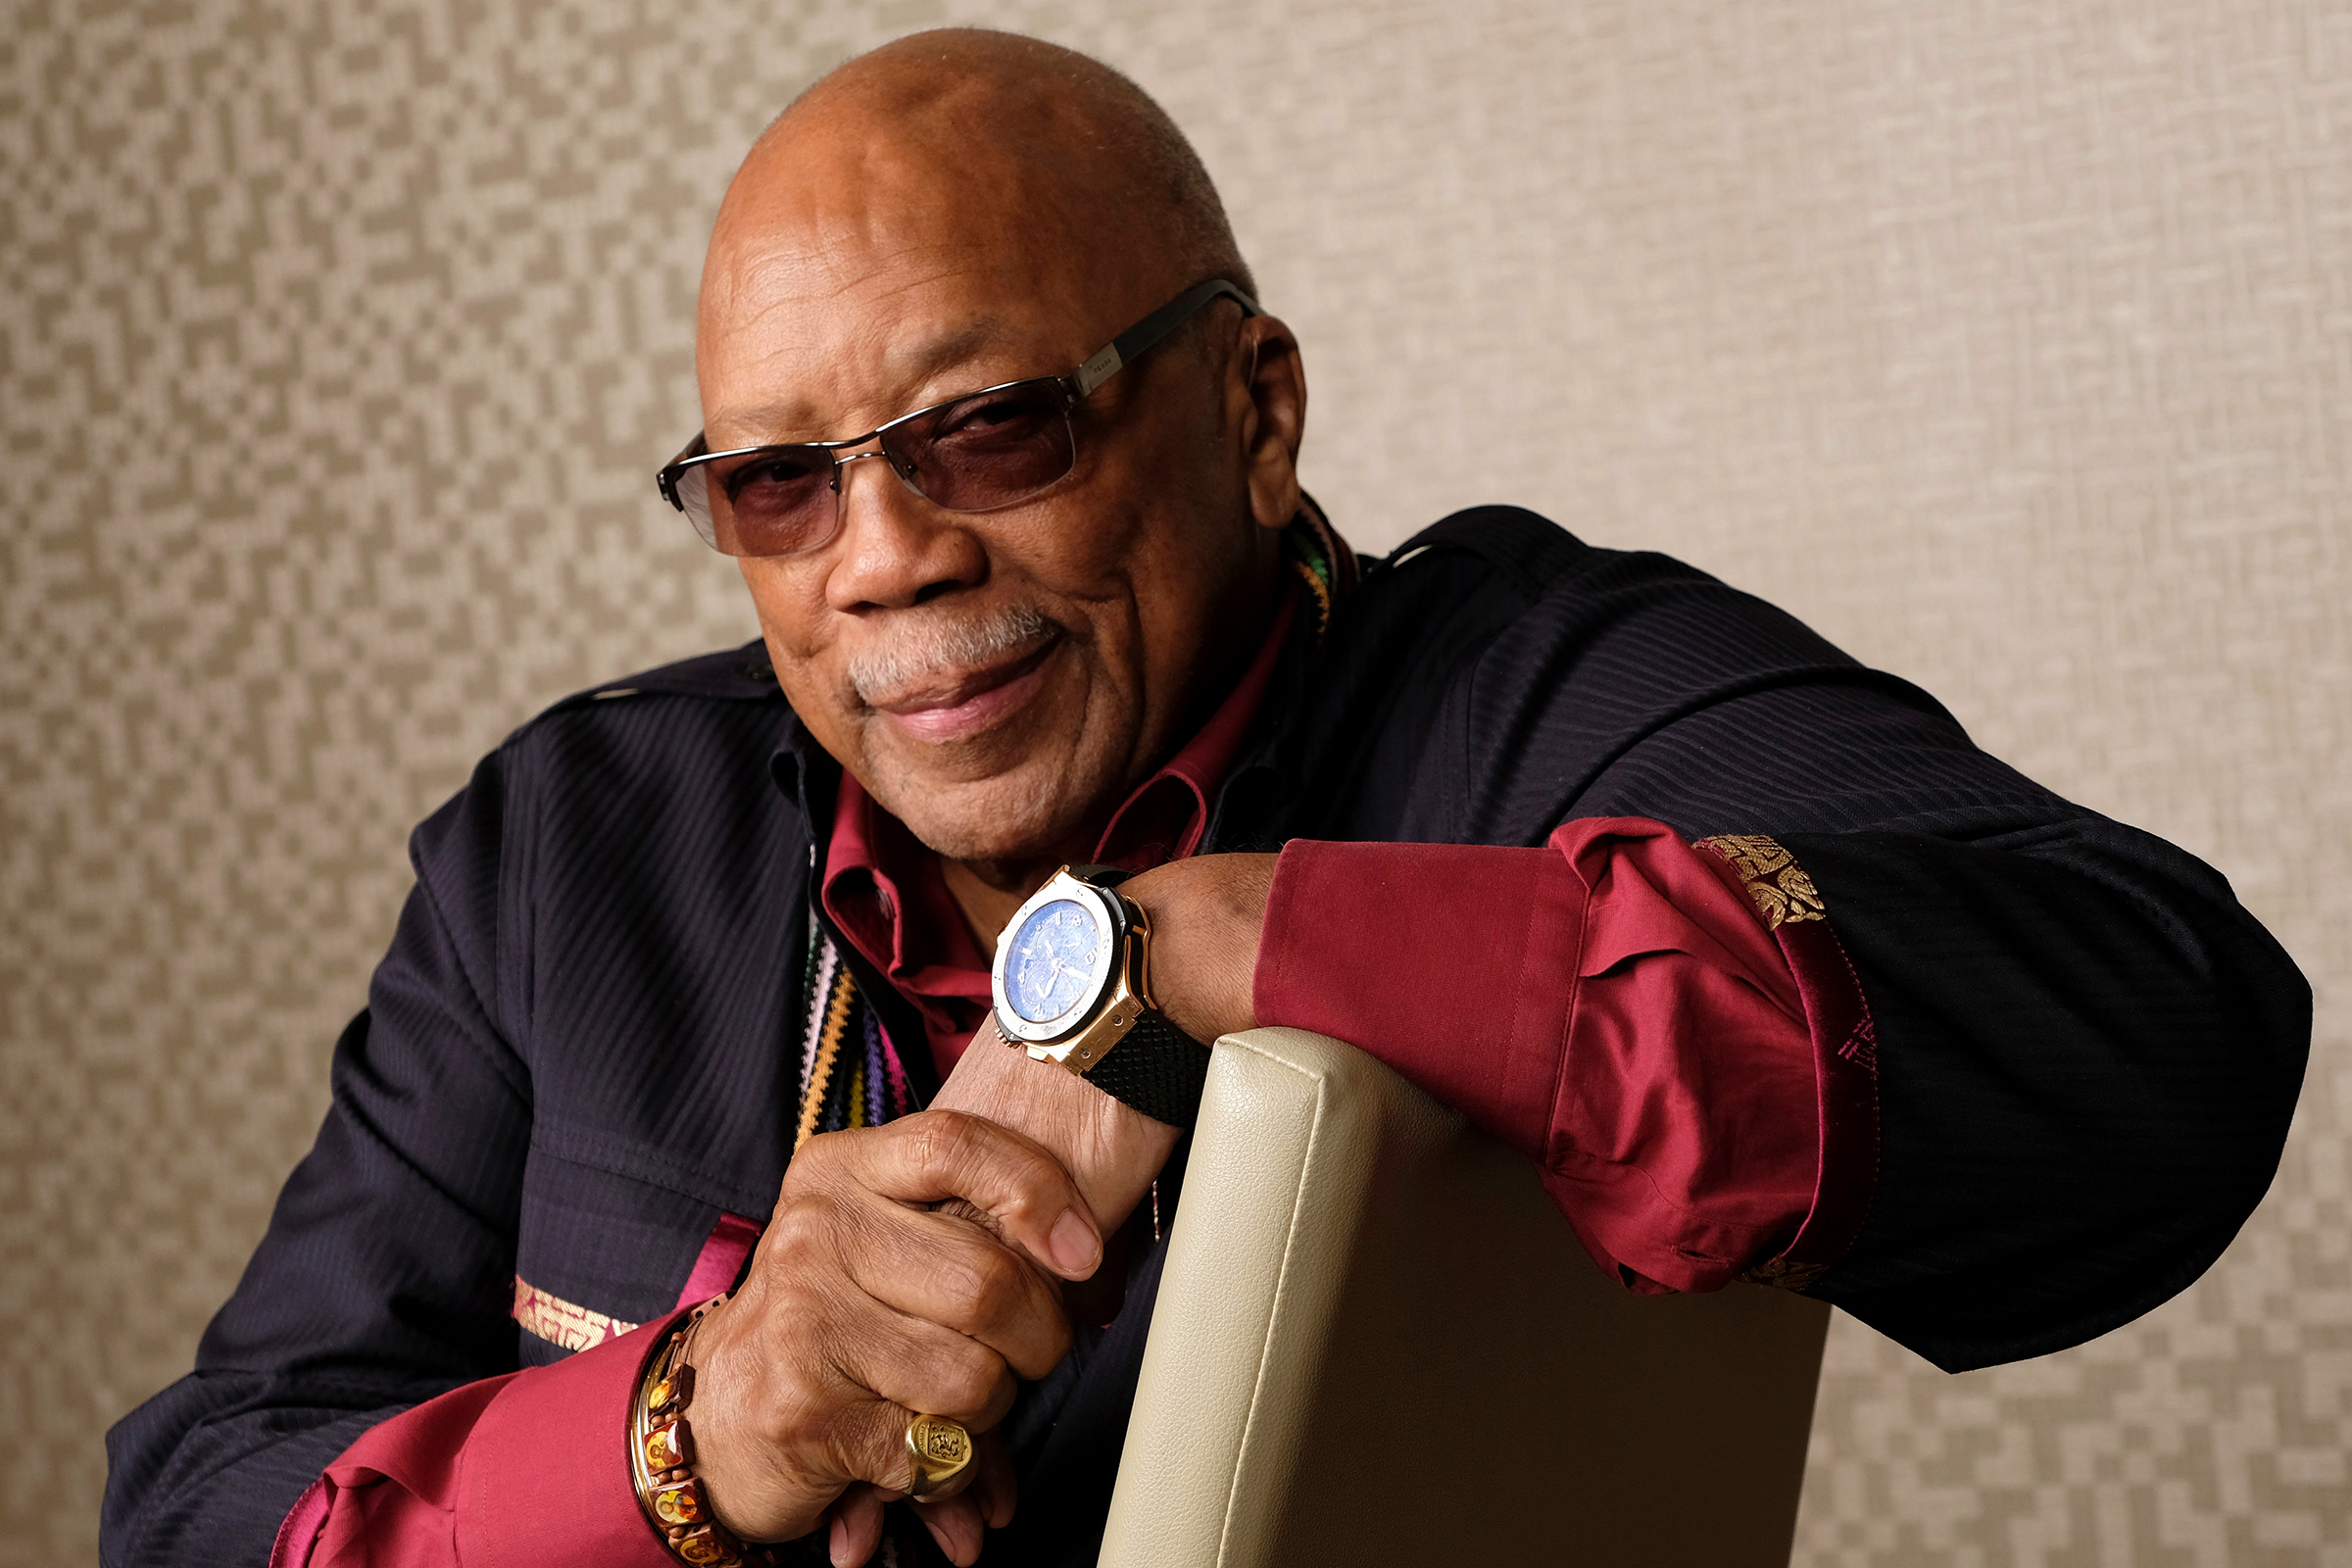 Quincy Jones Concert in London Removes Michael Jackson References From Title